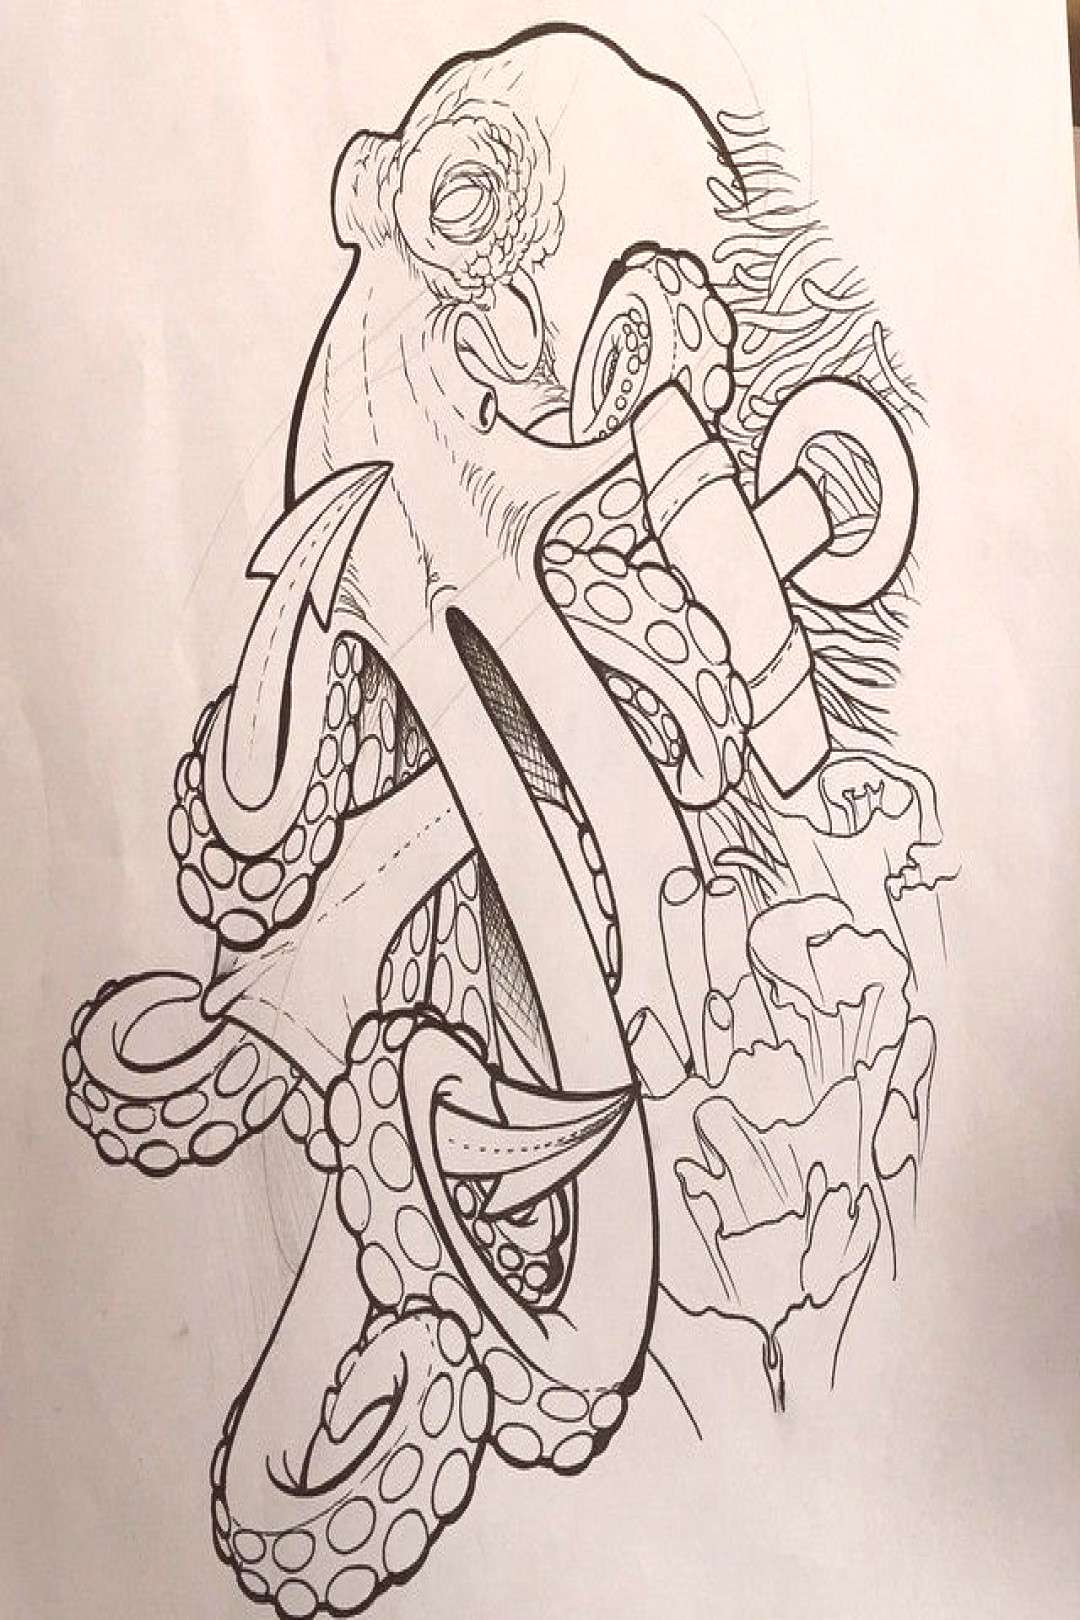 Black Outline Pirate Octopus With Anchor Tattoo Design ... - Black Outline Pirate Octopus With Anc